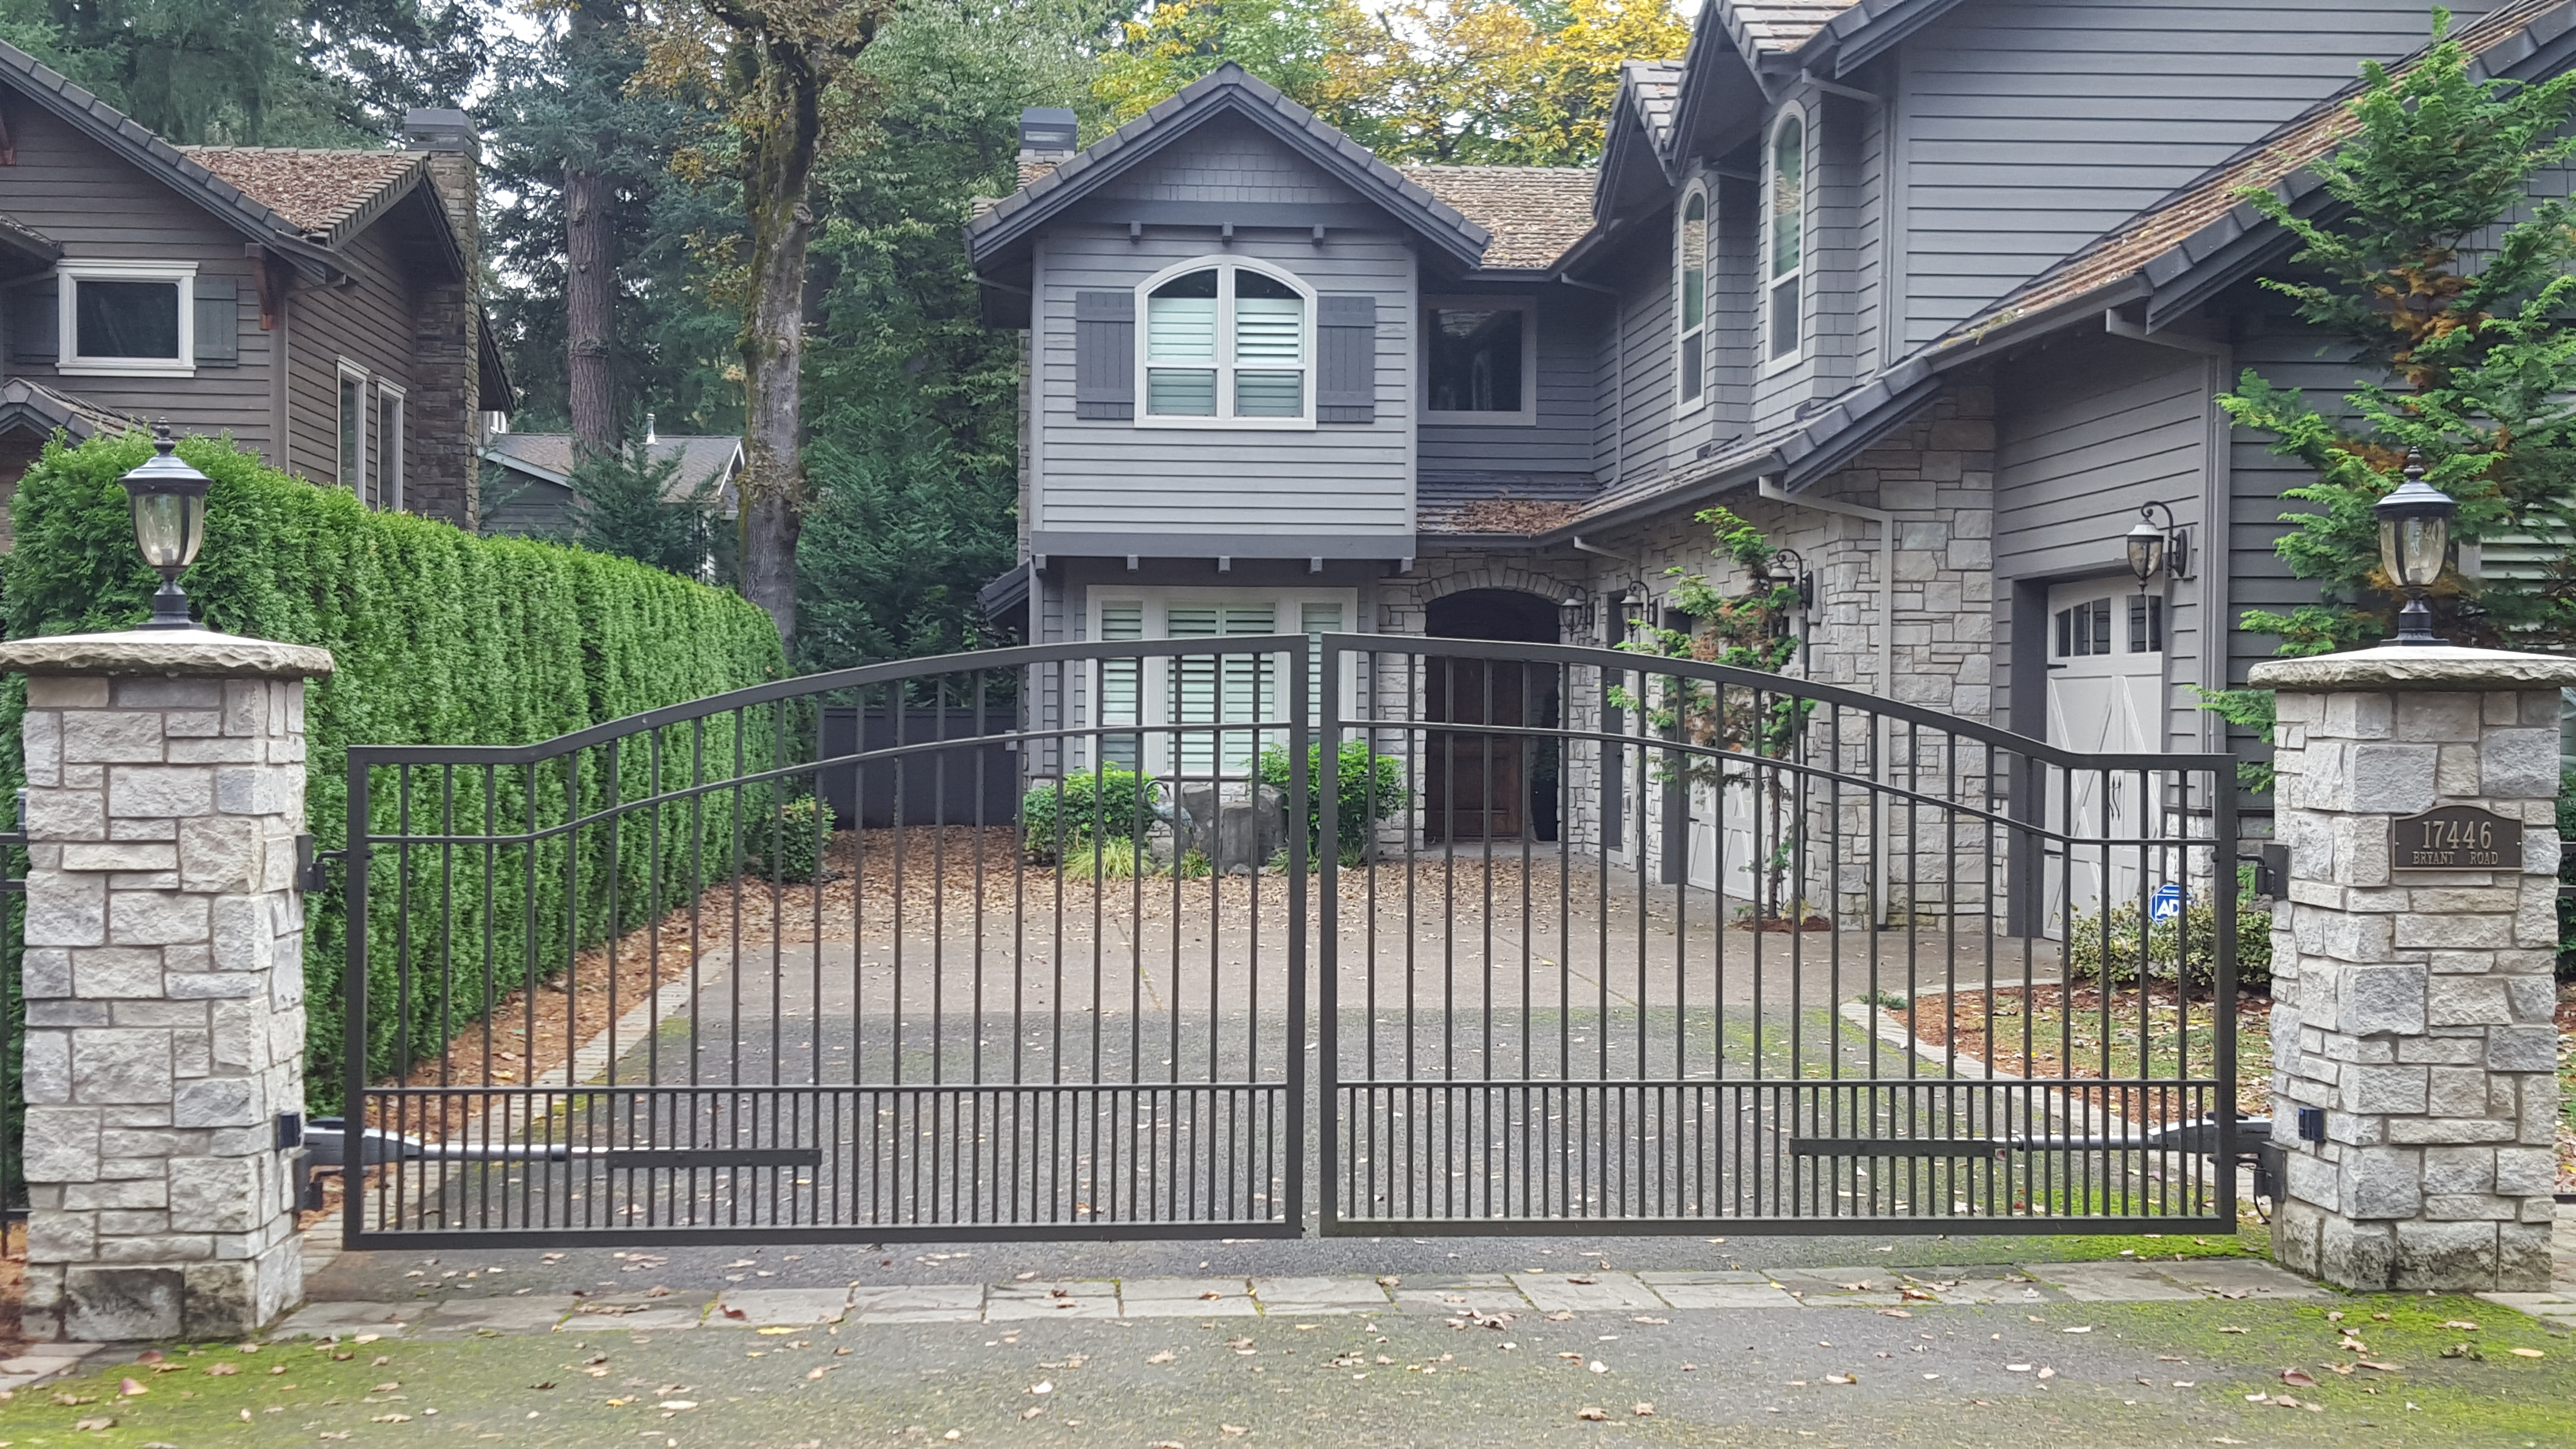 CORNERSTONE FENCING INC